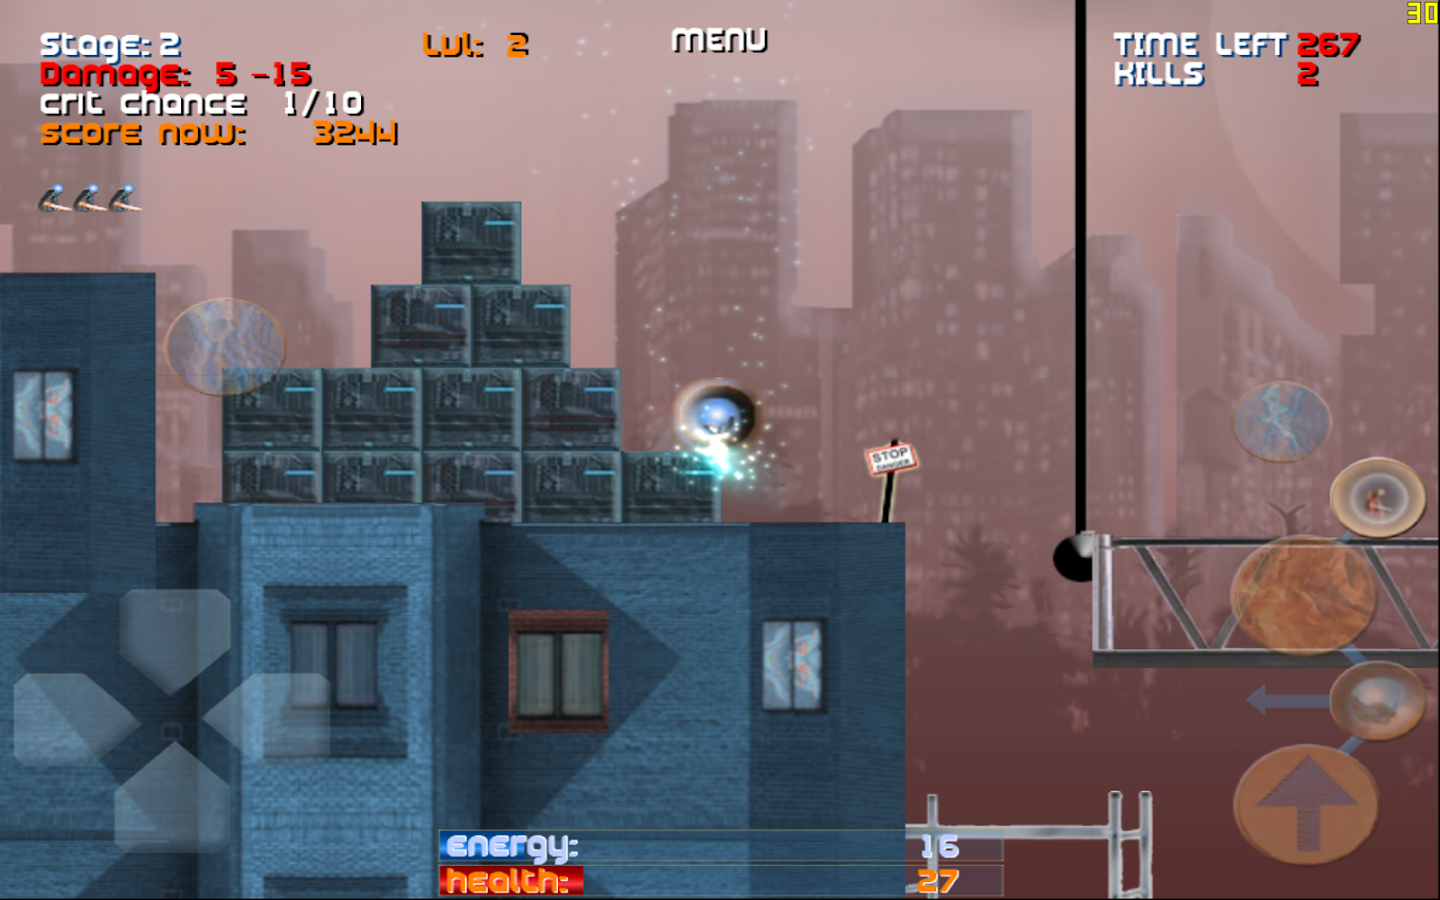 Alien Ball - Invasion 2014 - screenshot